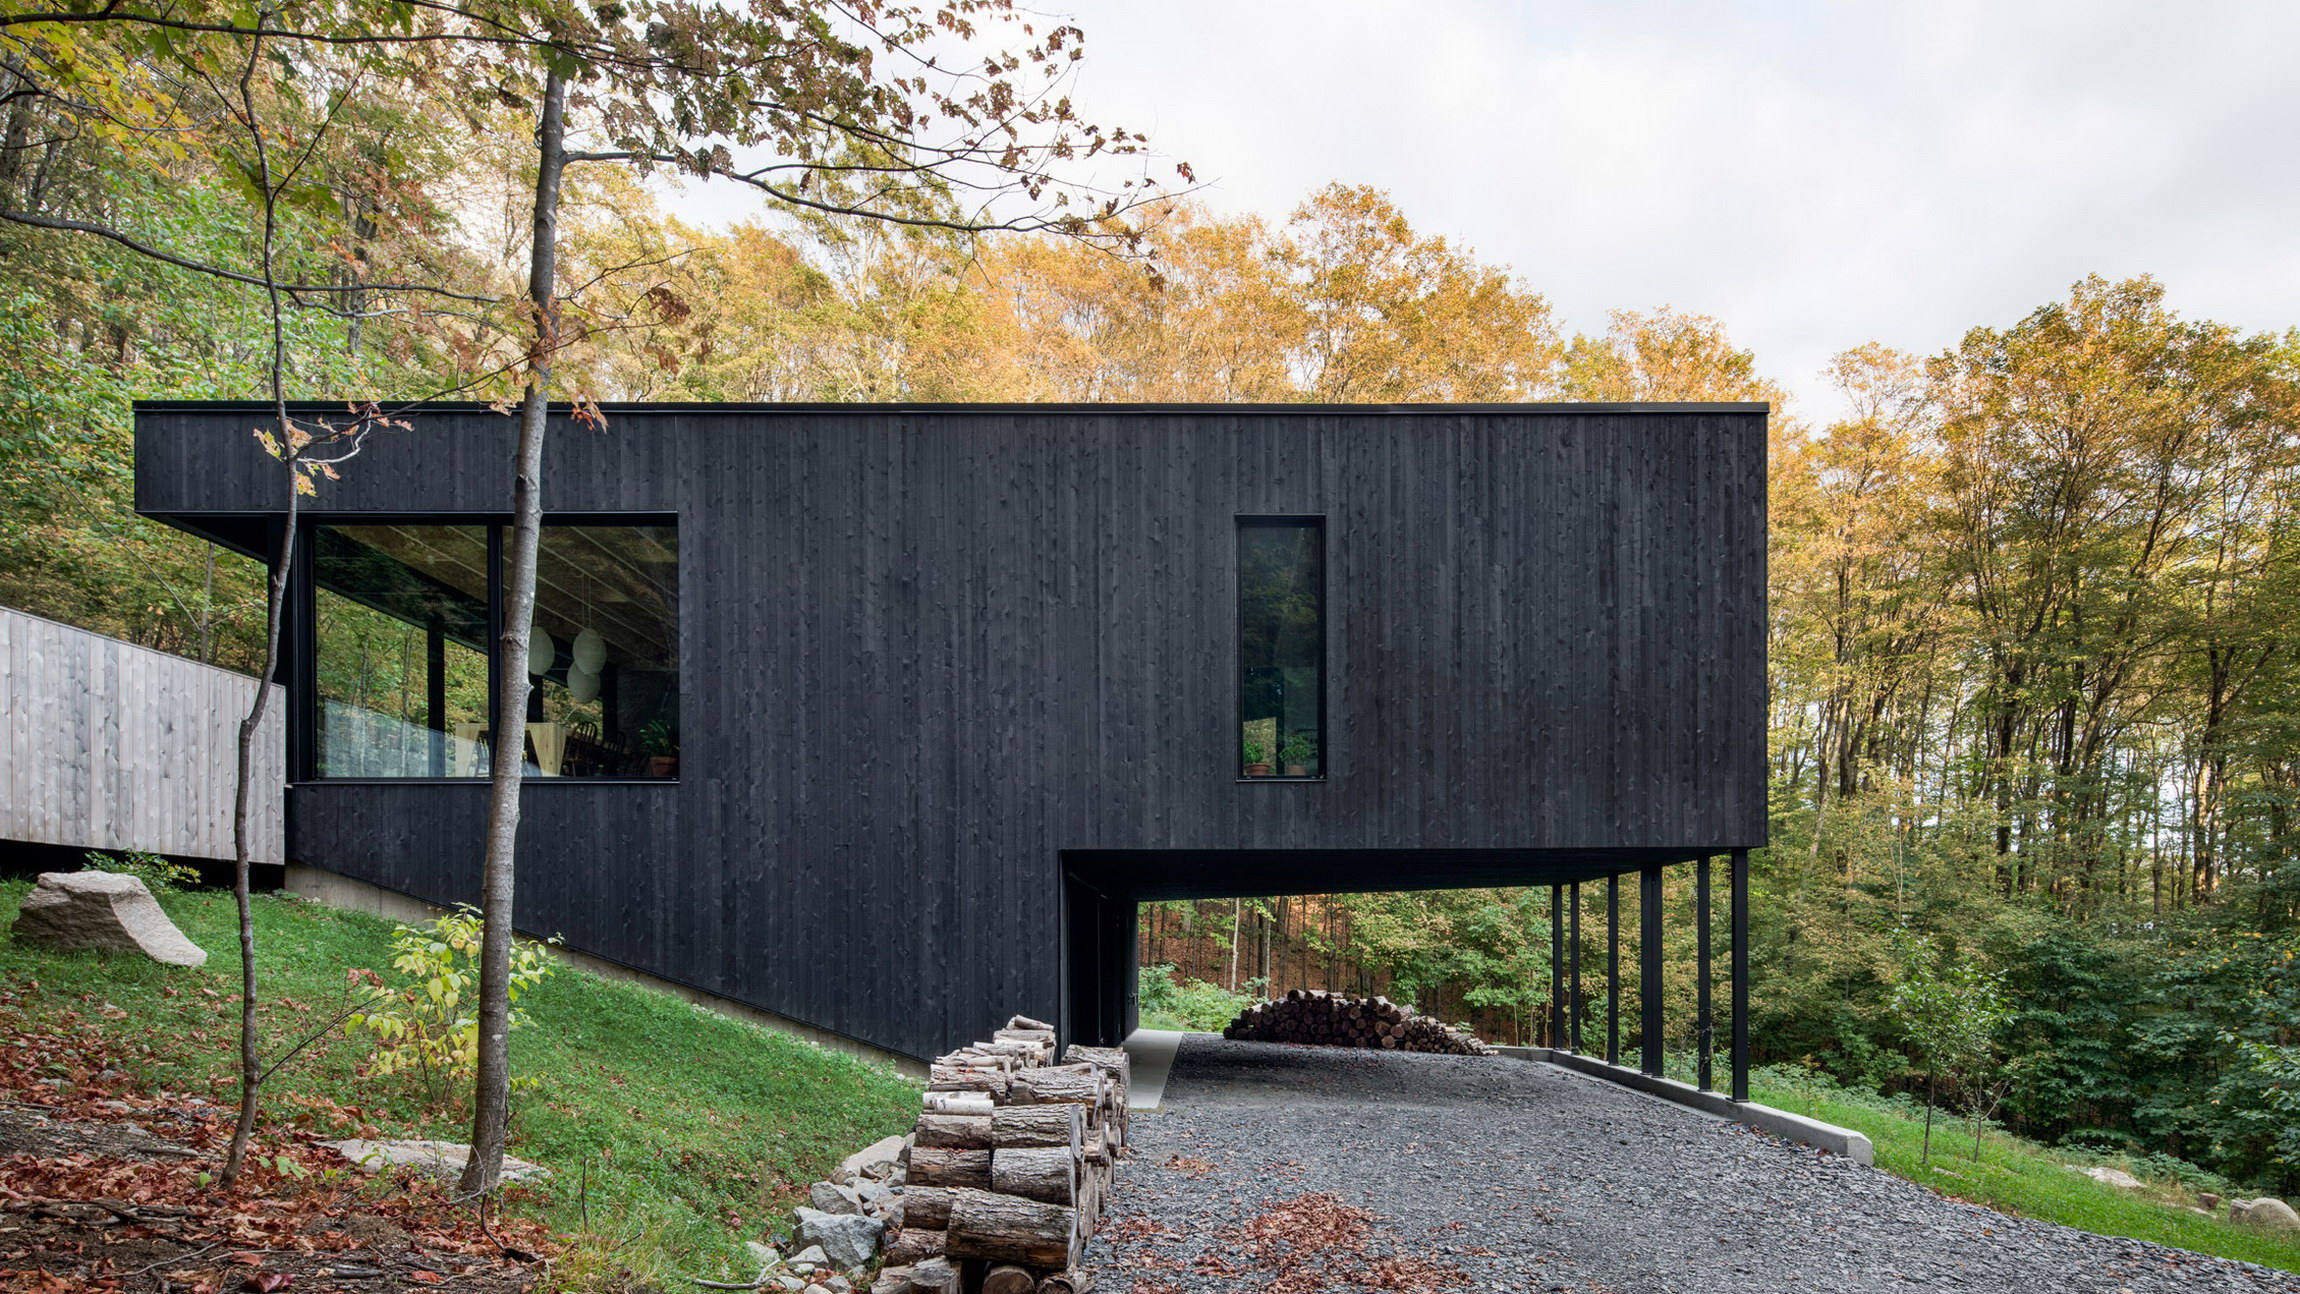 The Rock | Black Residence on a Hillside by Atelier General Architecture